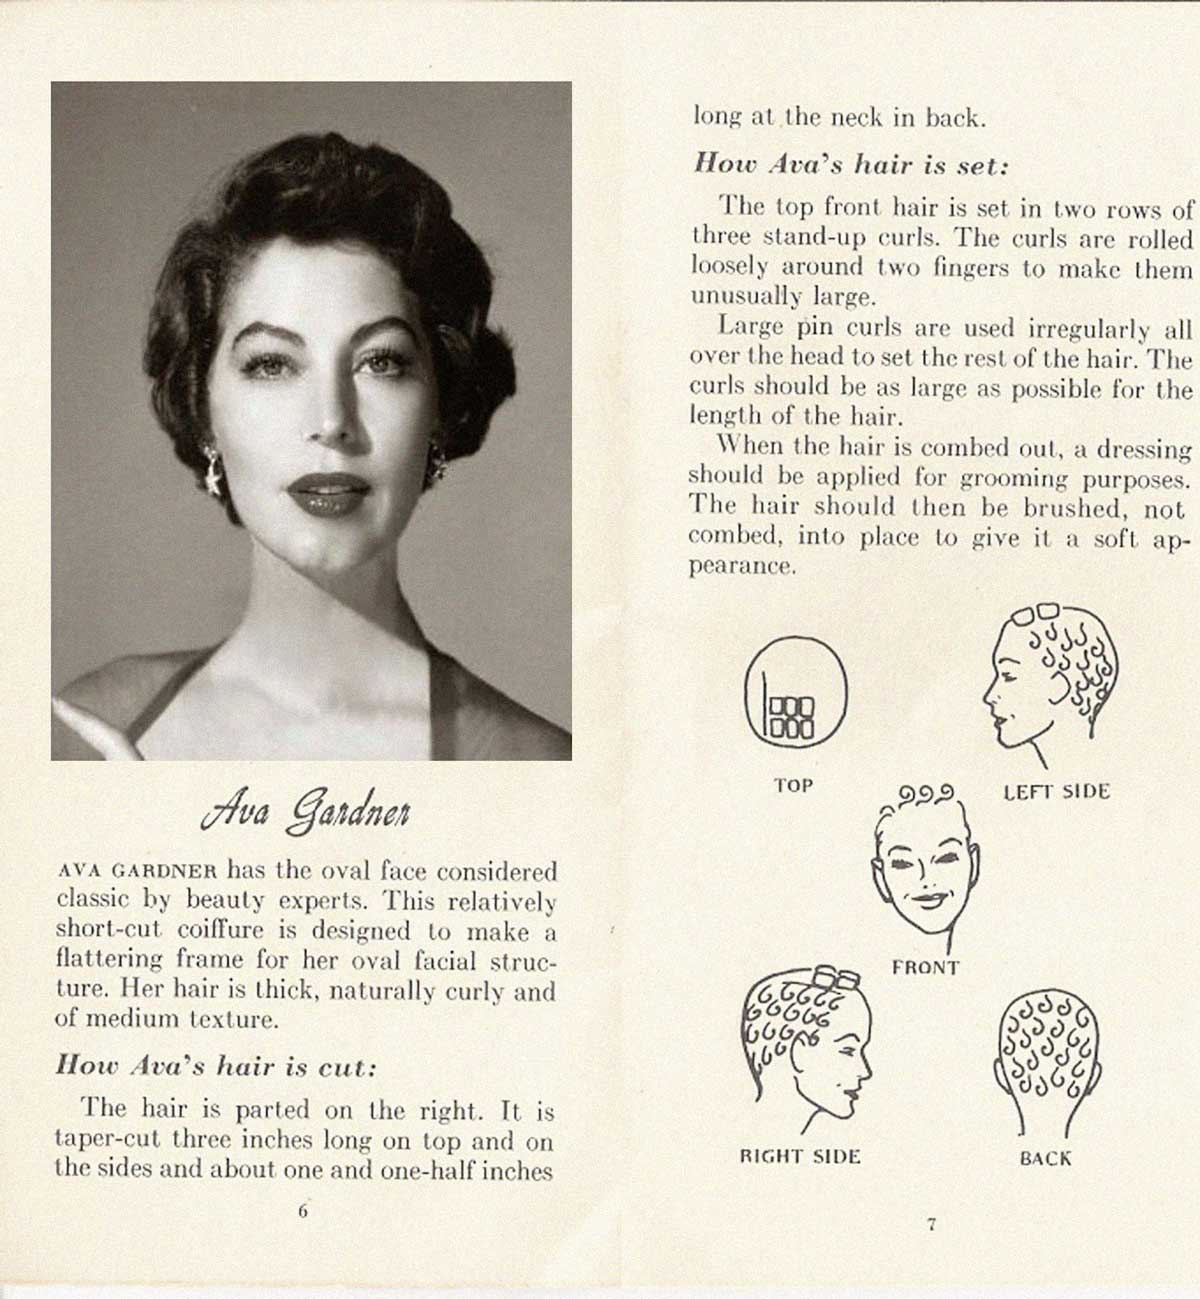 pin curl diagram 97 jeep wrangler fuse box 10 hollywood hairstyles of the 50s glamour daze 5 how to achieve ava gardner hairstyle